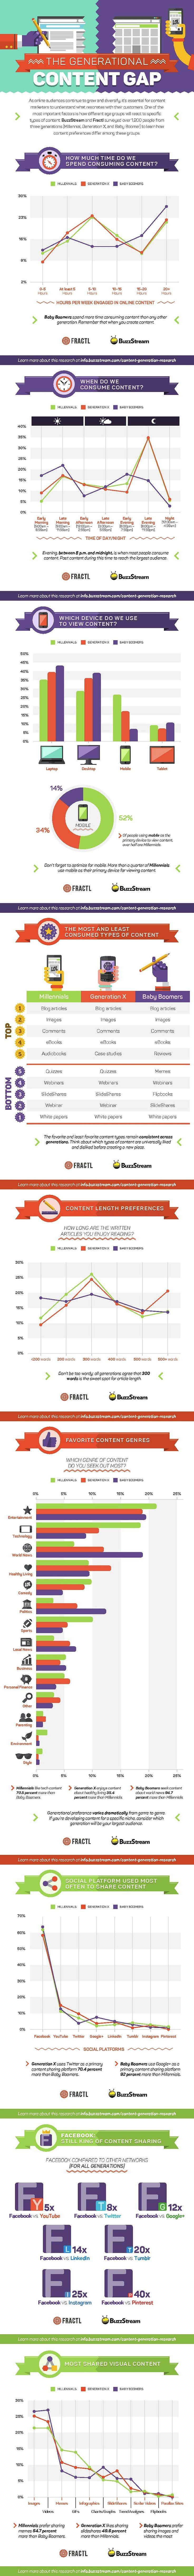 How Different Generations Consume Content Online